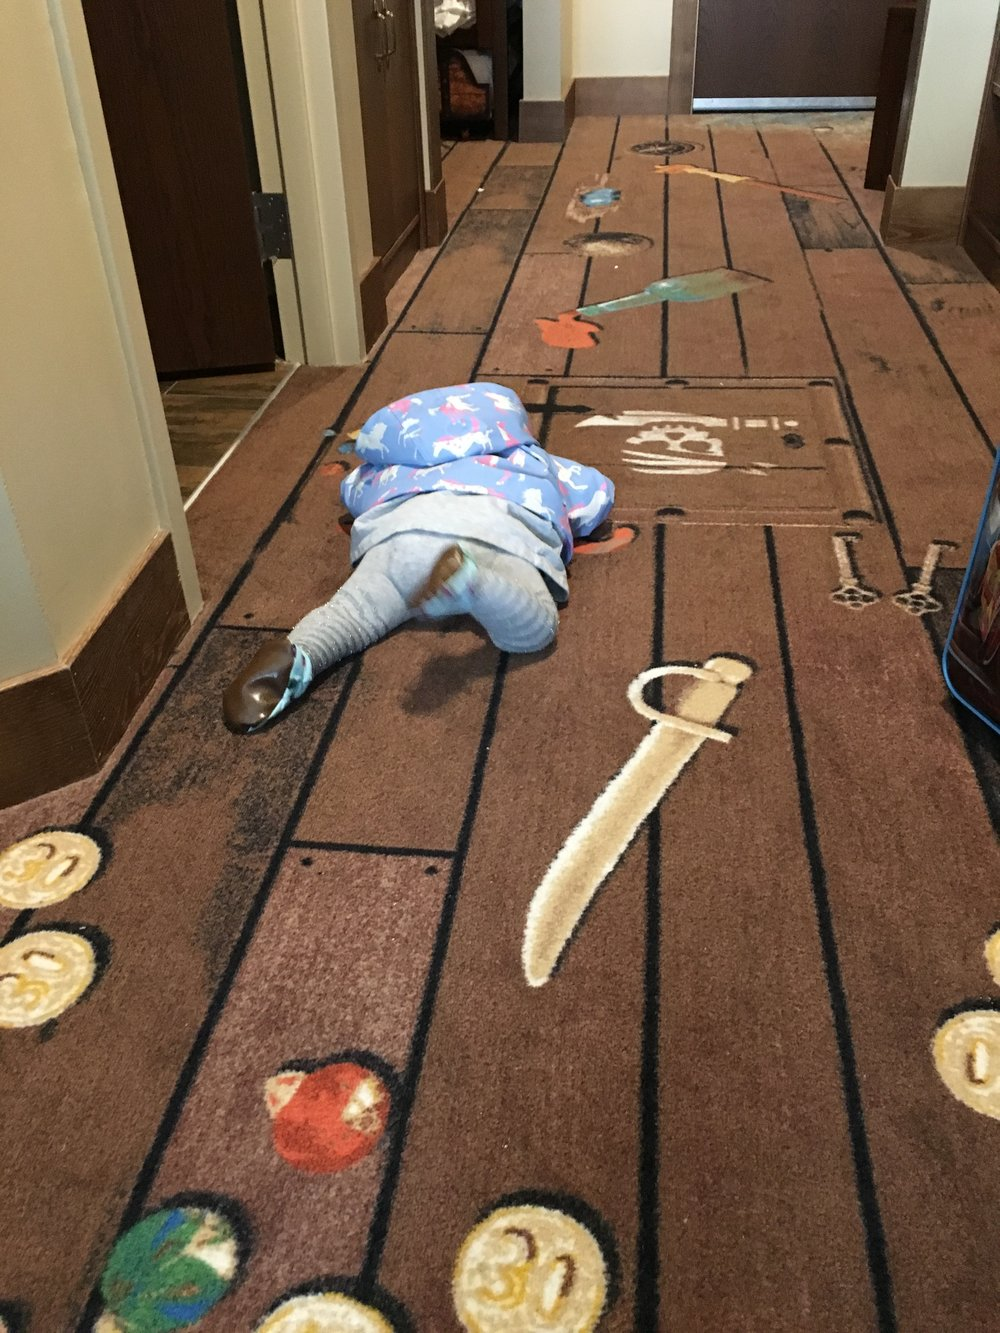 Isla exhasuted on the pirate themed floor